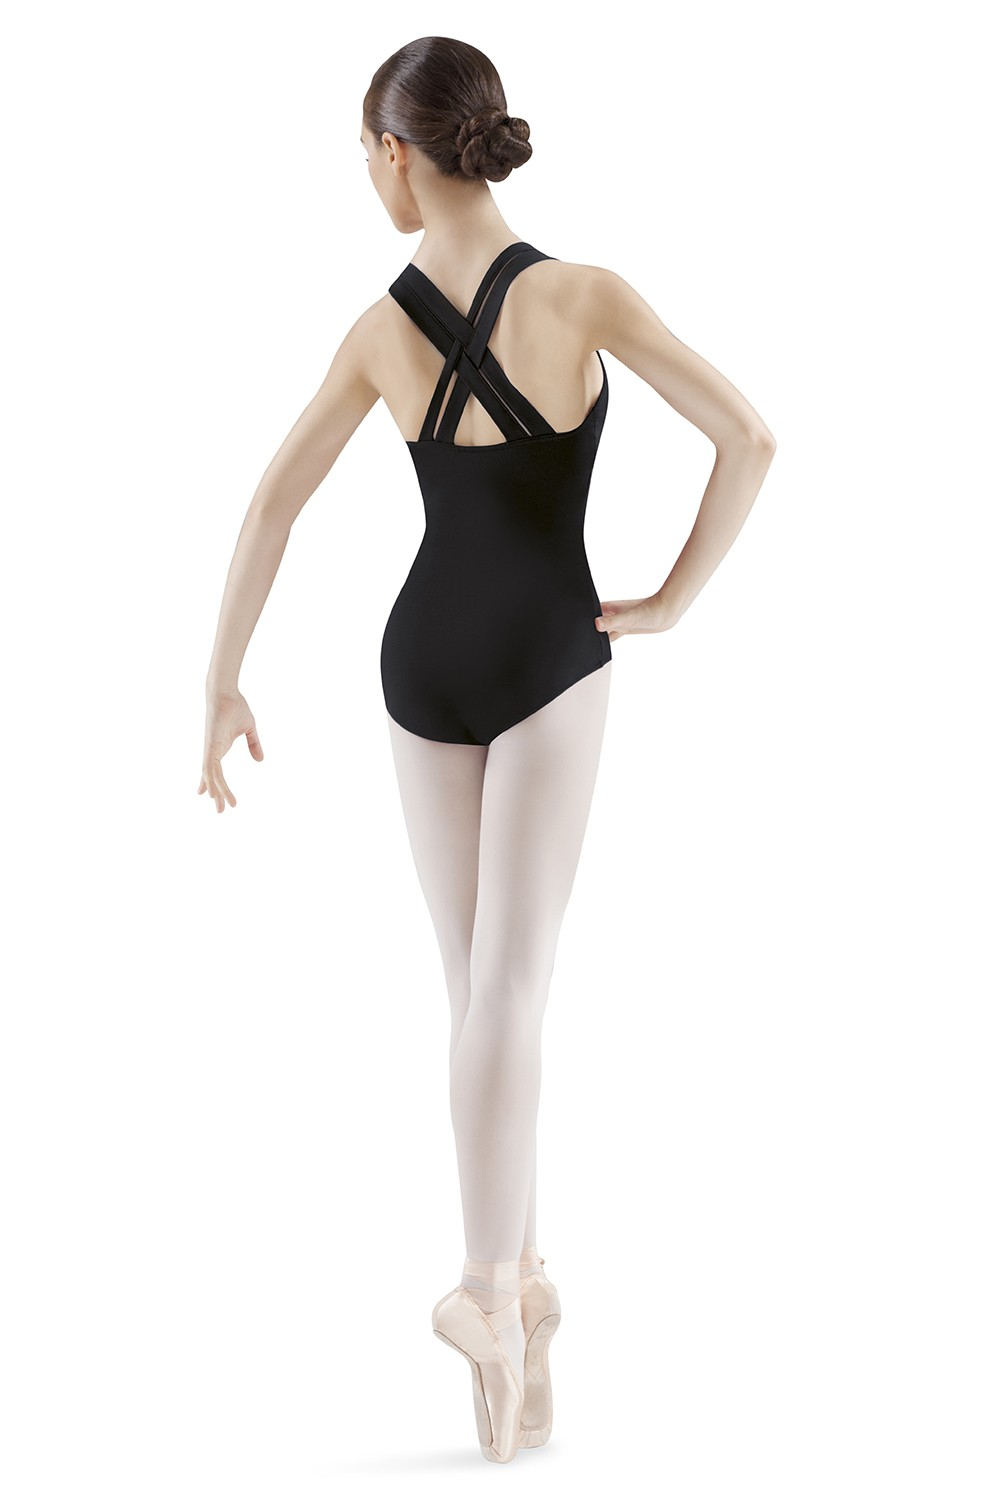 Interlaced Strap Leotard Women's Dance Leotards